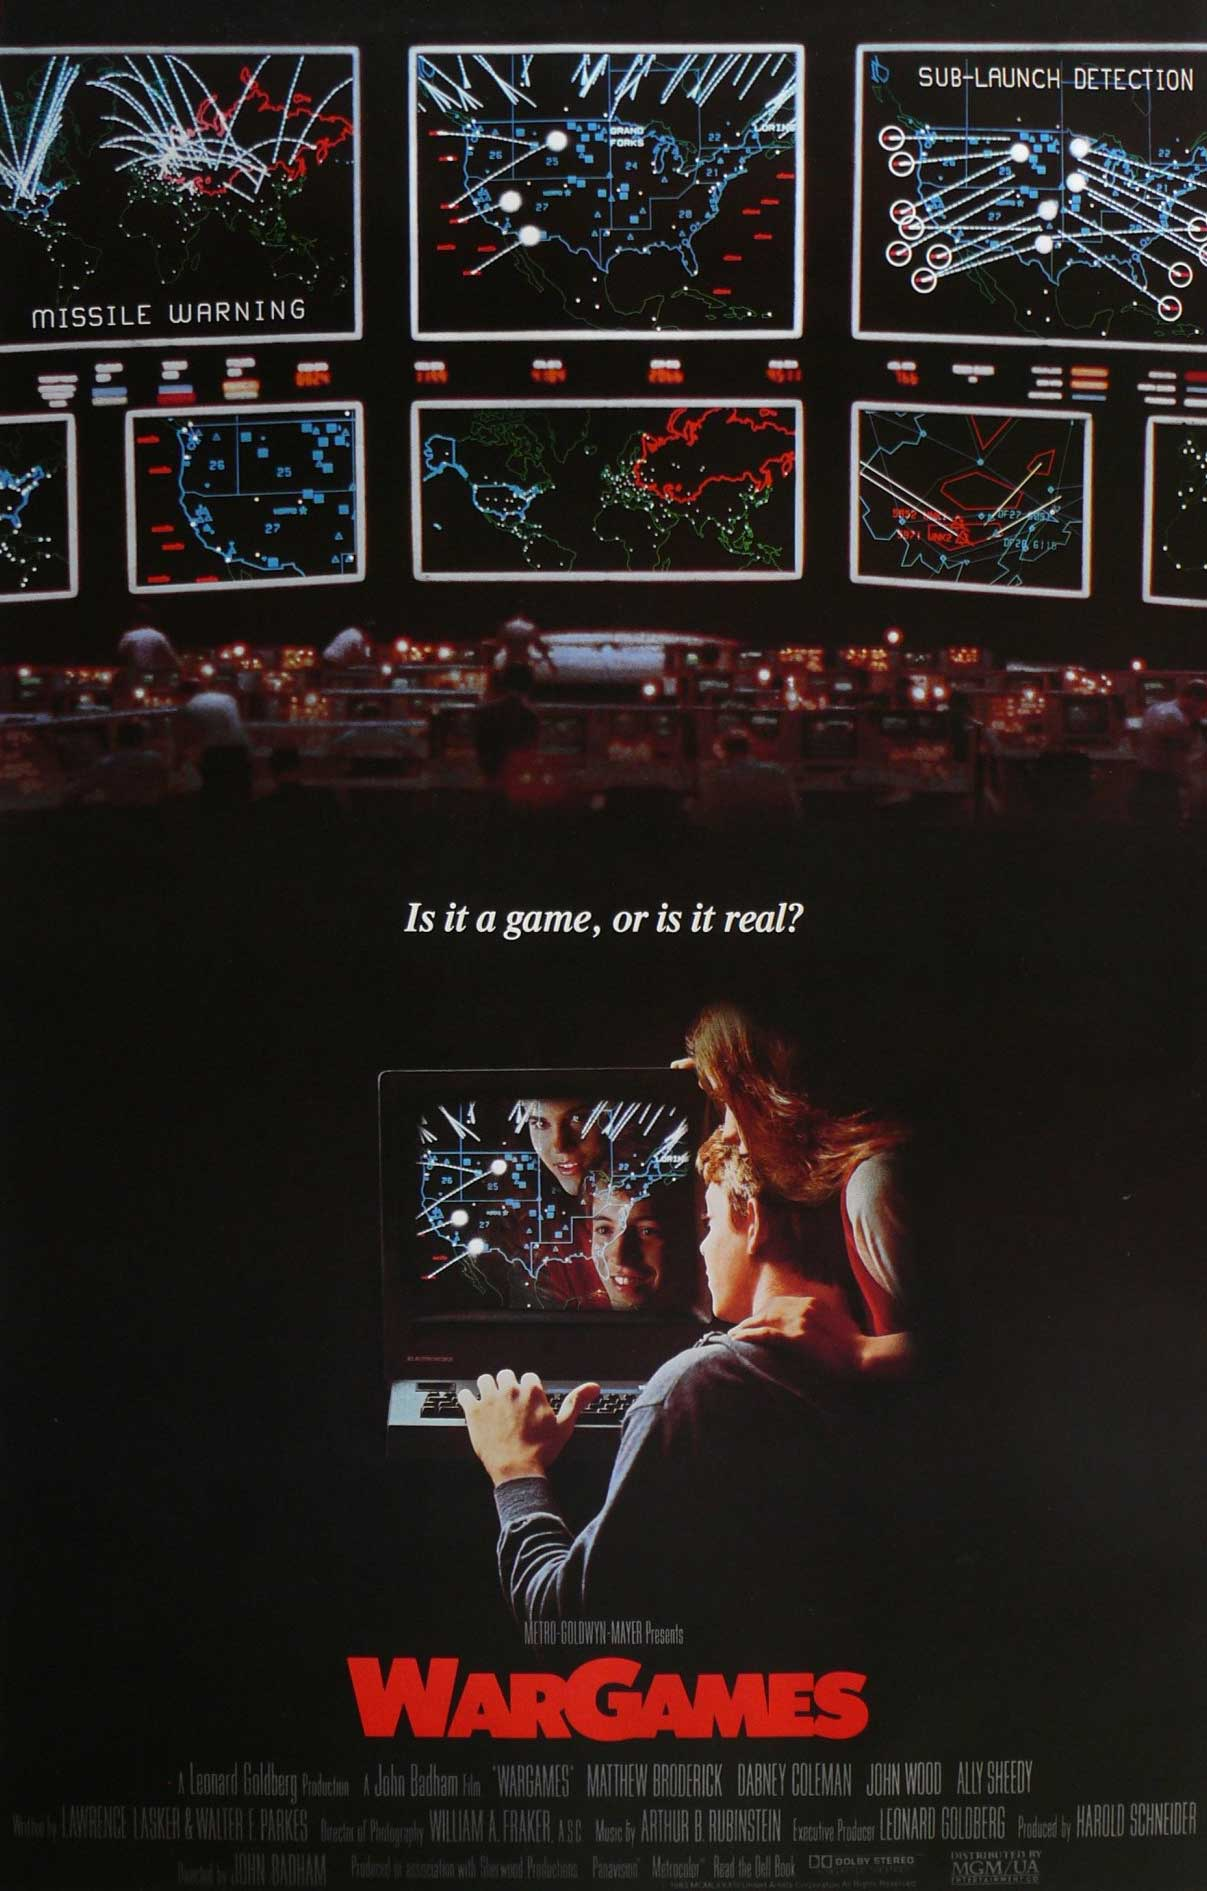 Lessons of WarGames still Ring True, Even with the Dated